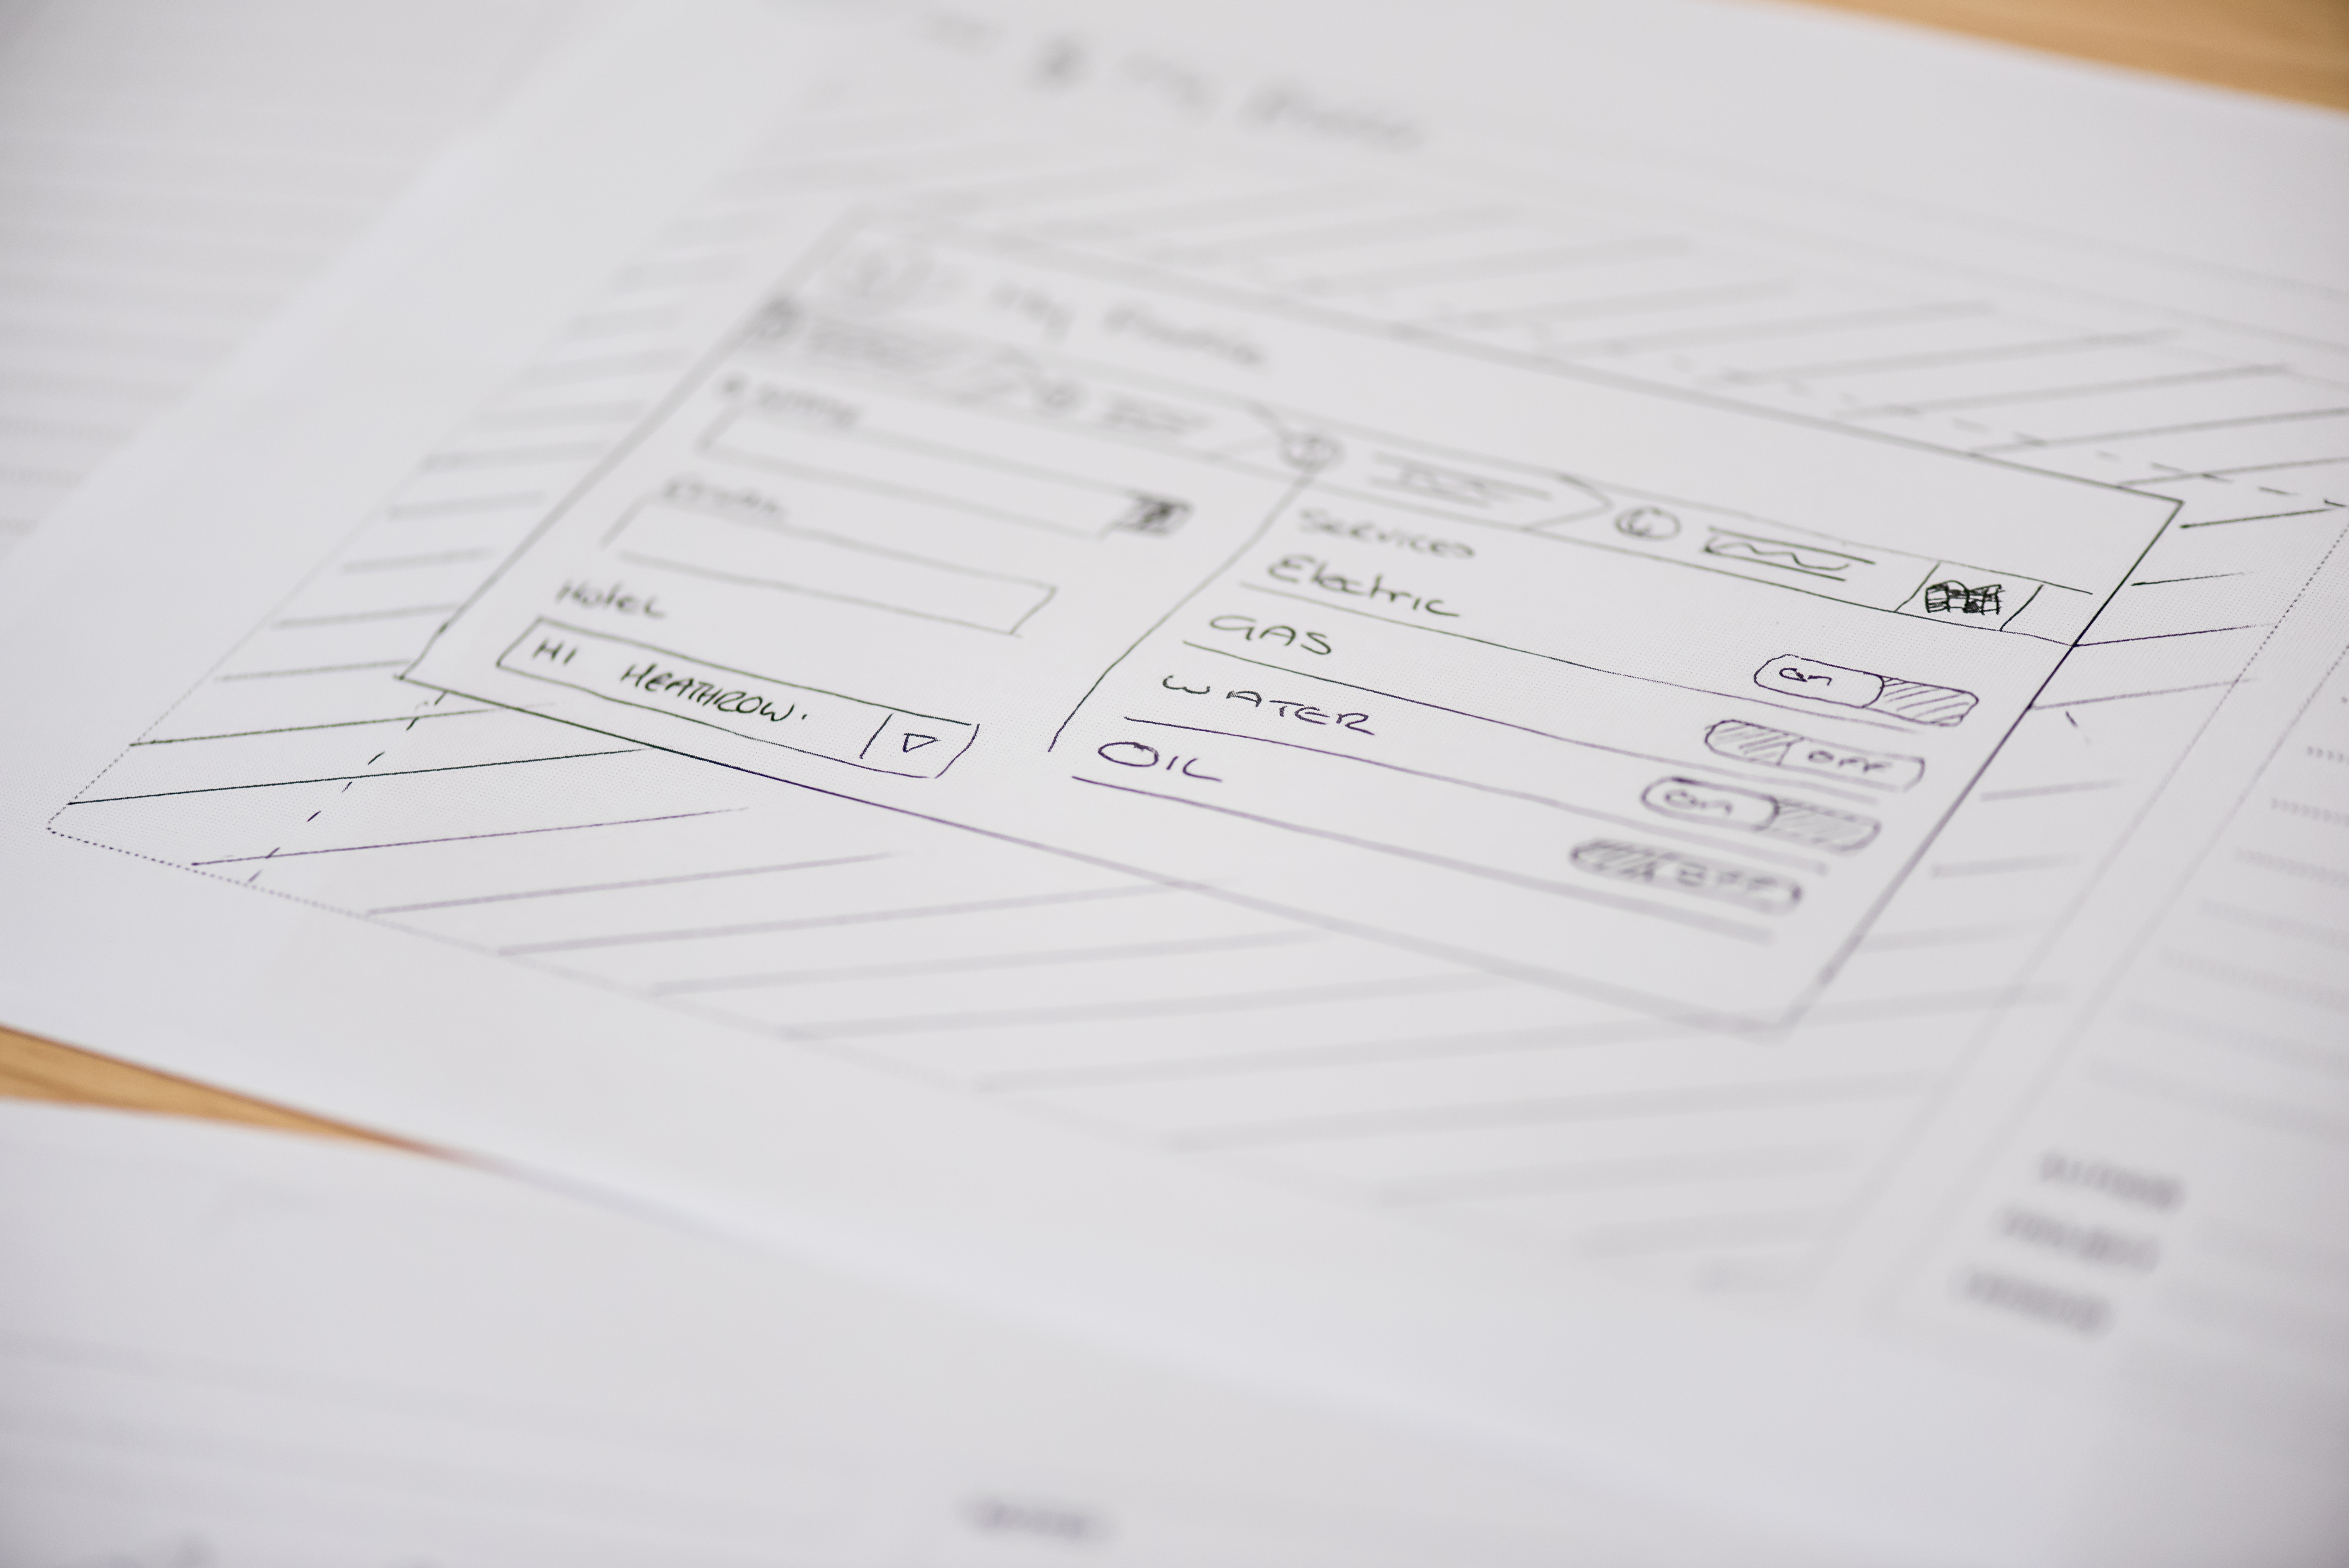 User experience hand-drawn wireframe